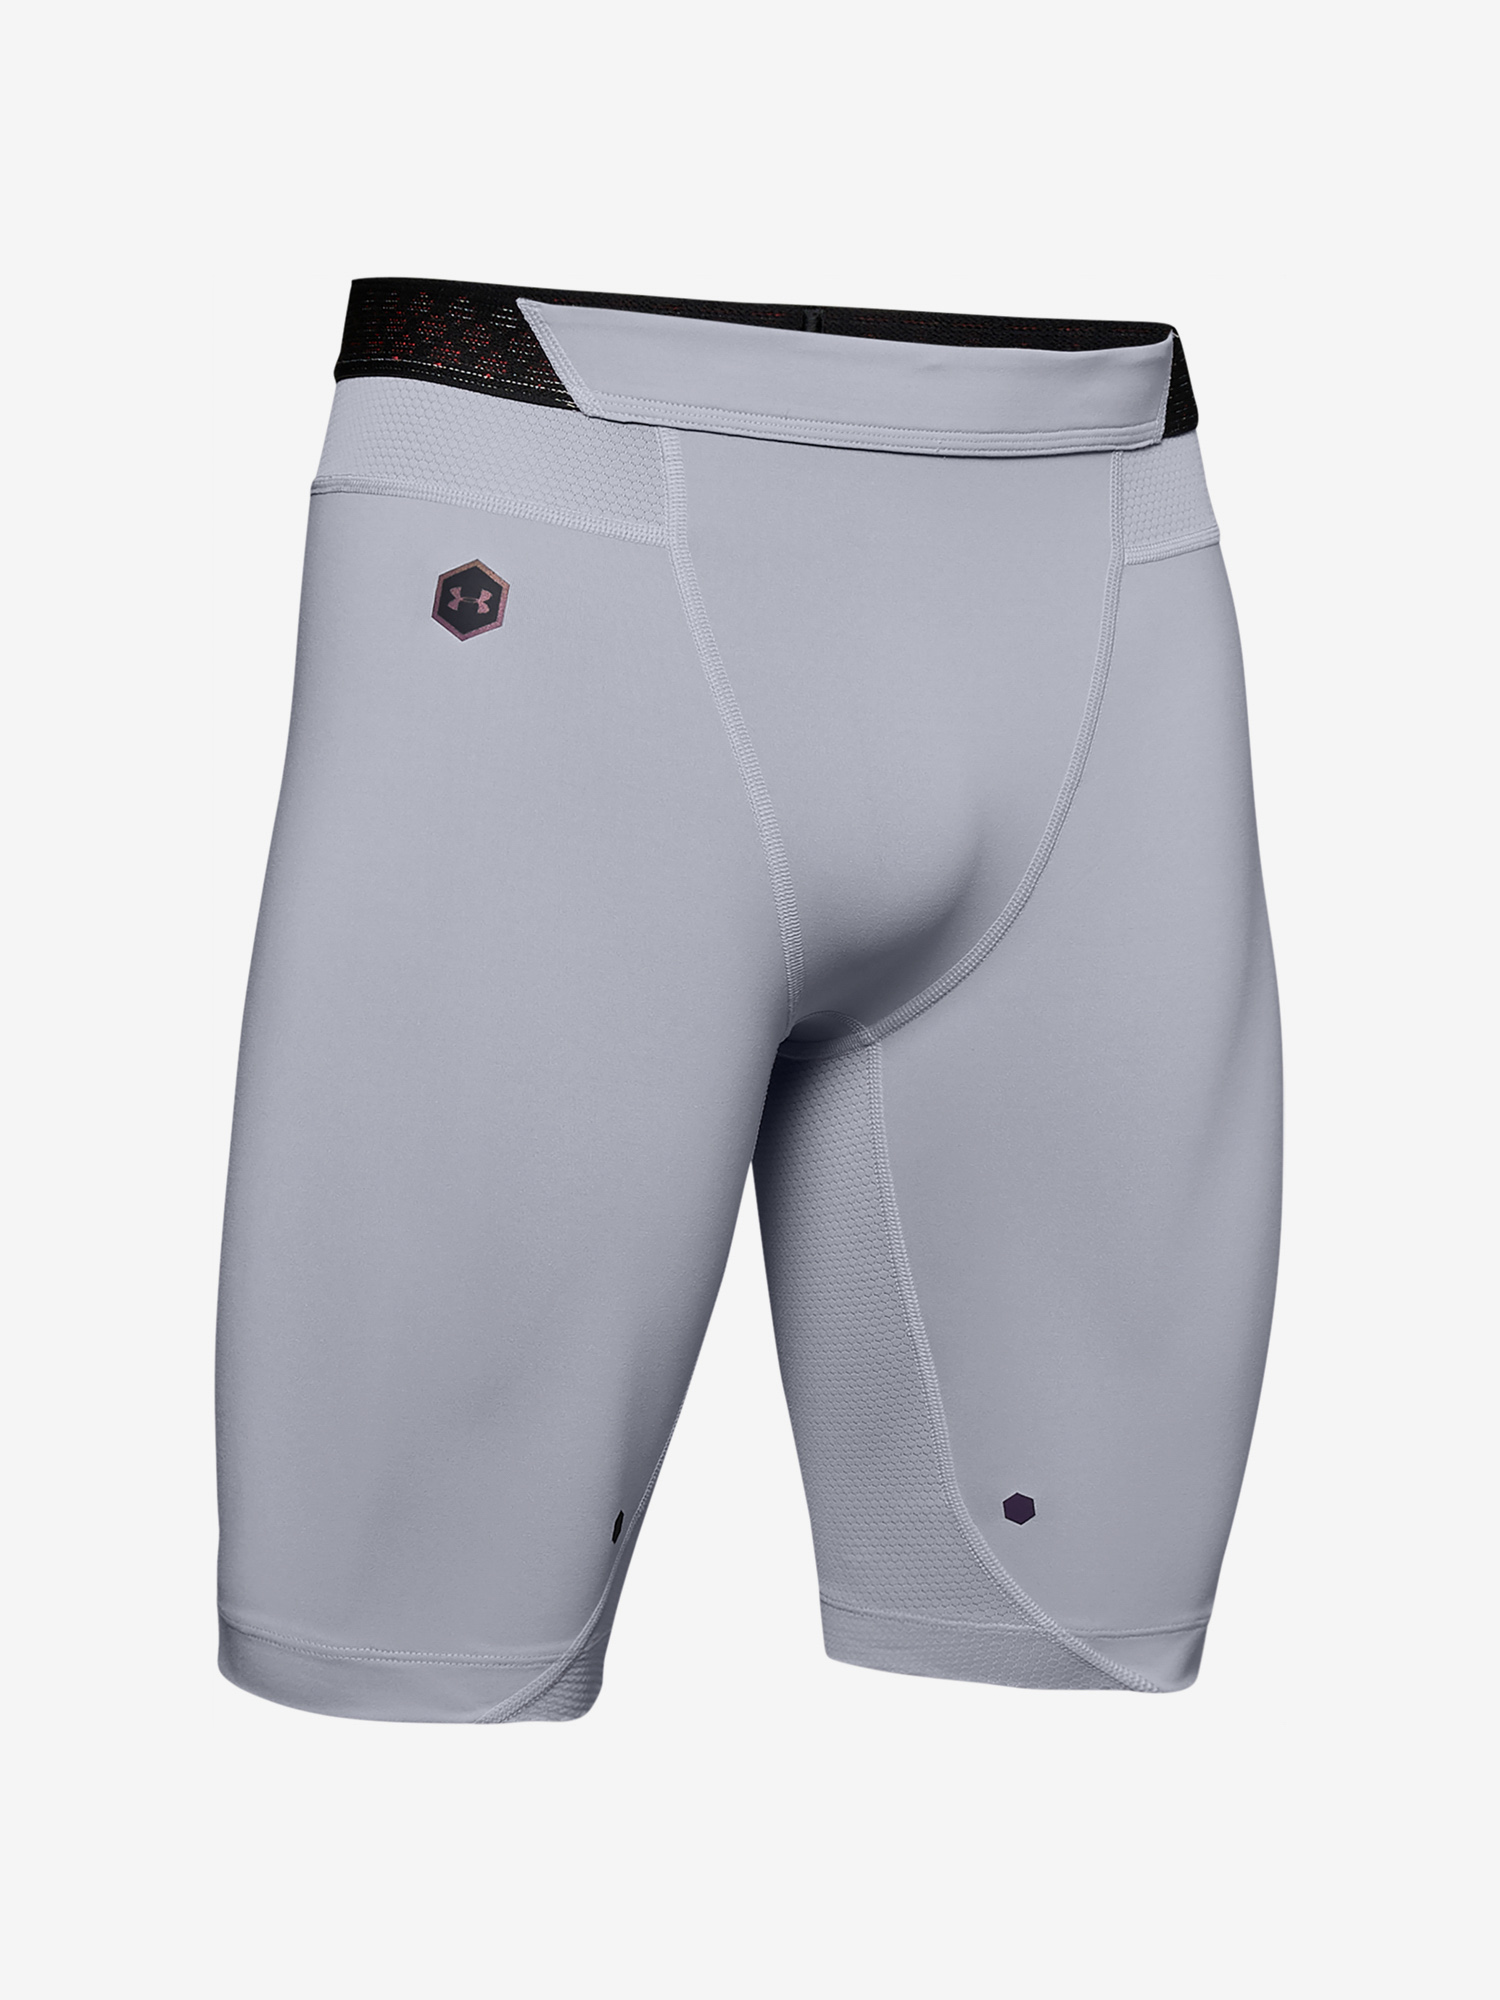 Kompresní šortky Under Armour Rush Comp Short (4)